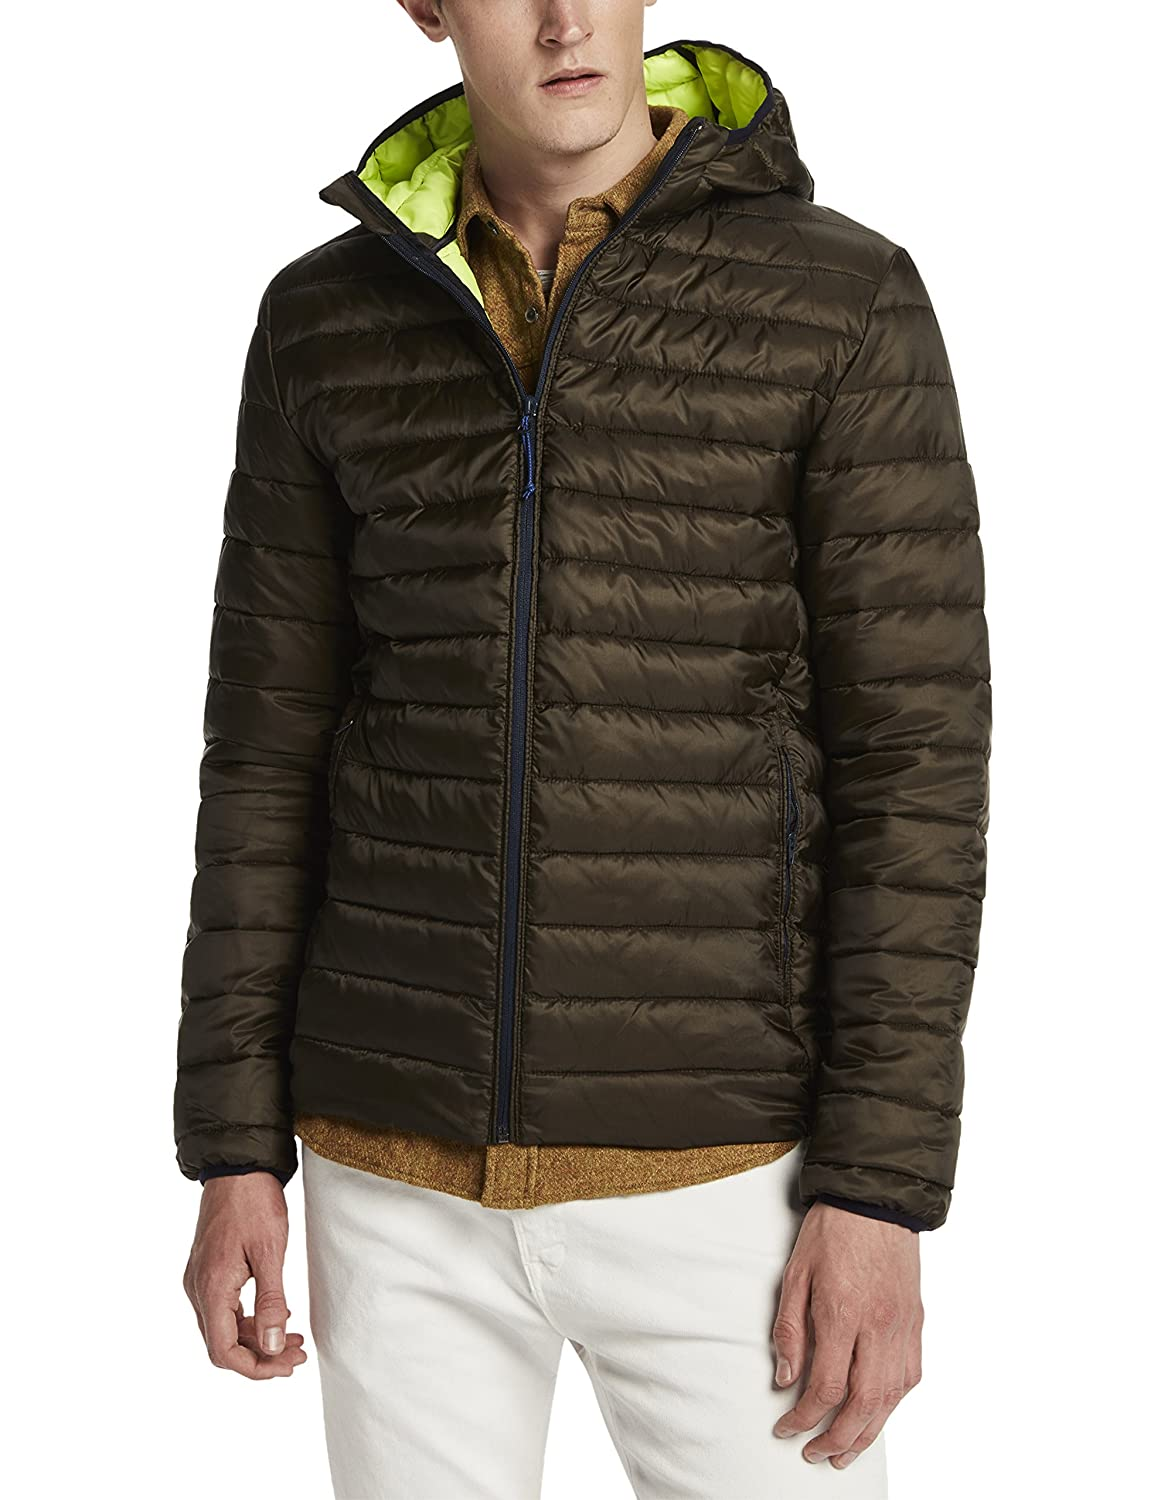 Scotch & Soda Herren Kapuzenpullover Classic Quilted Hooded Jacket in Nylon Quality